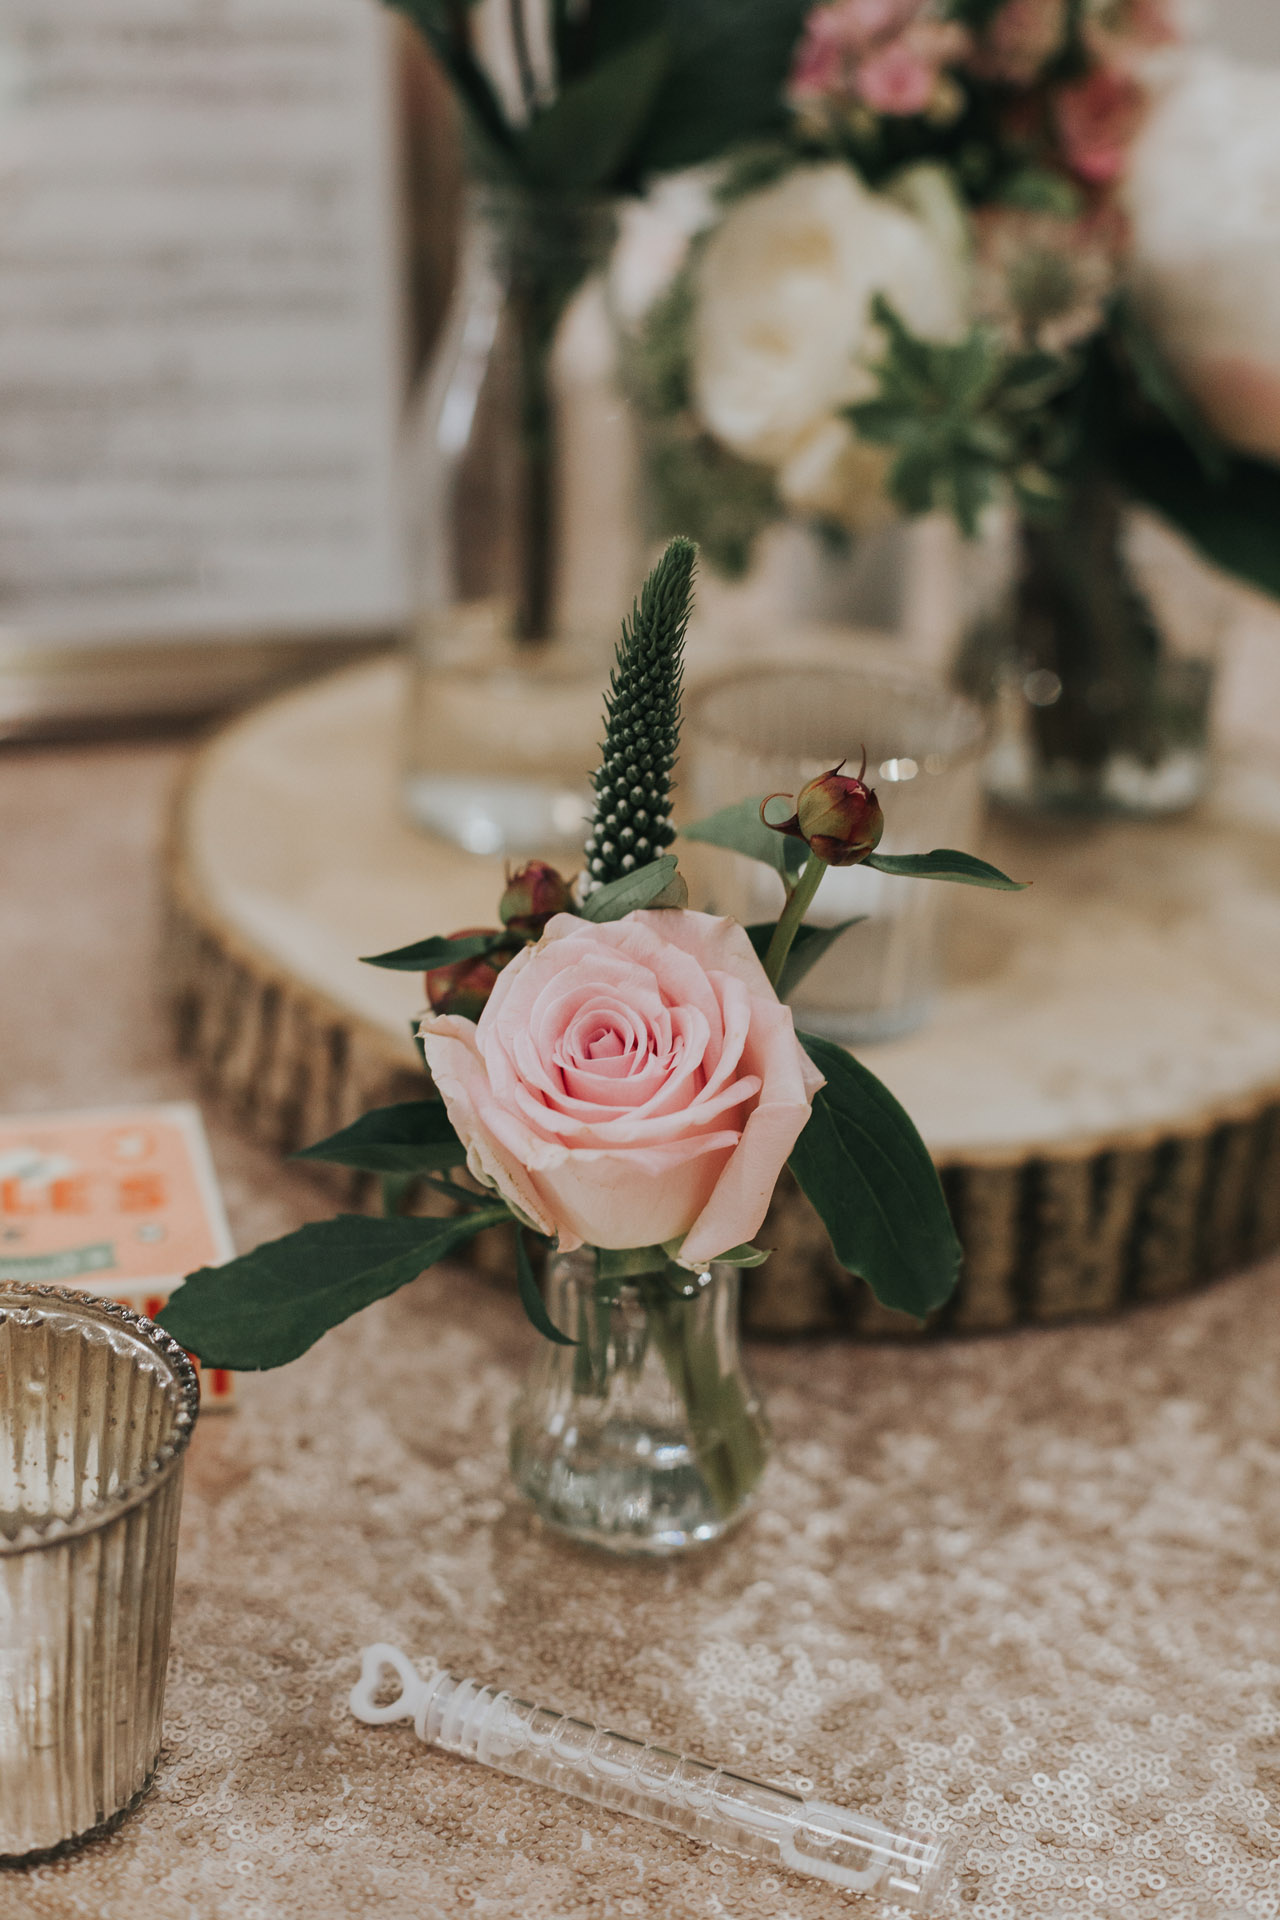 Flower table decorations.